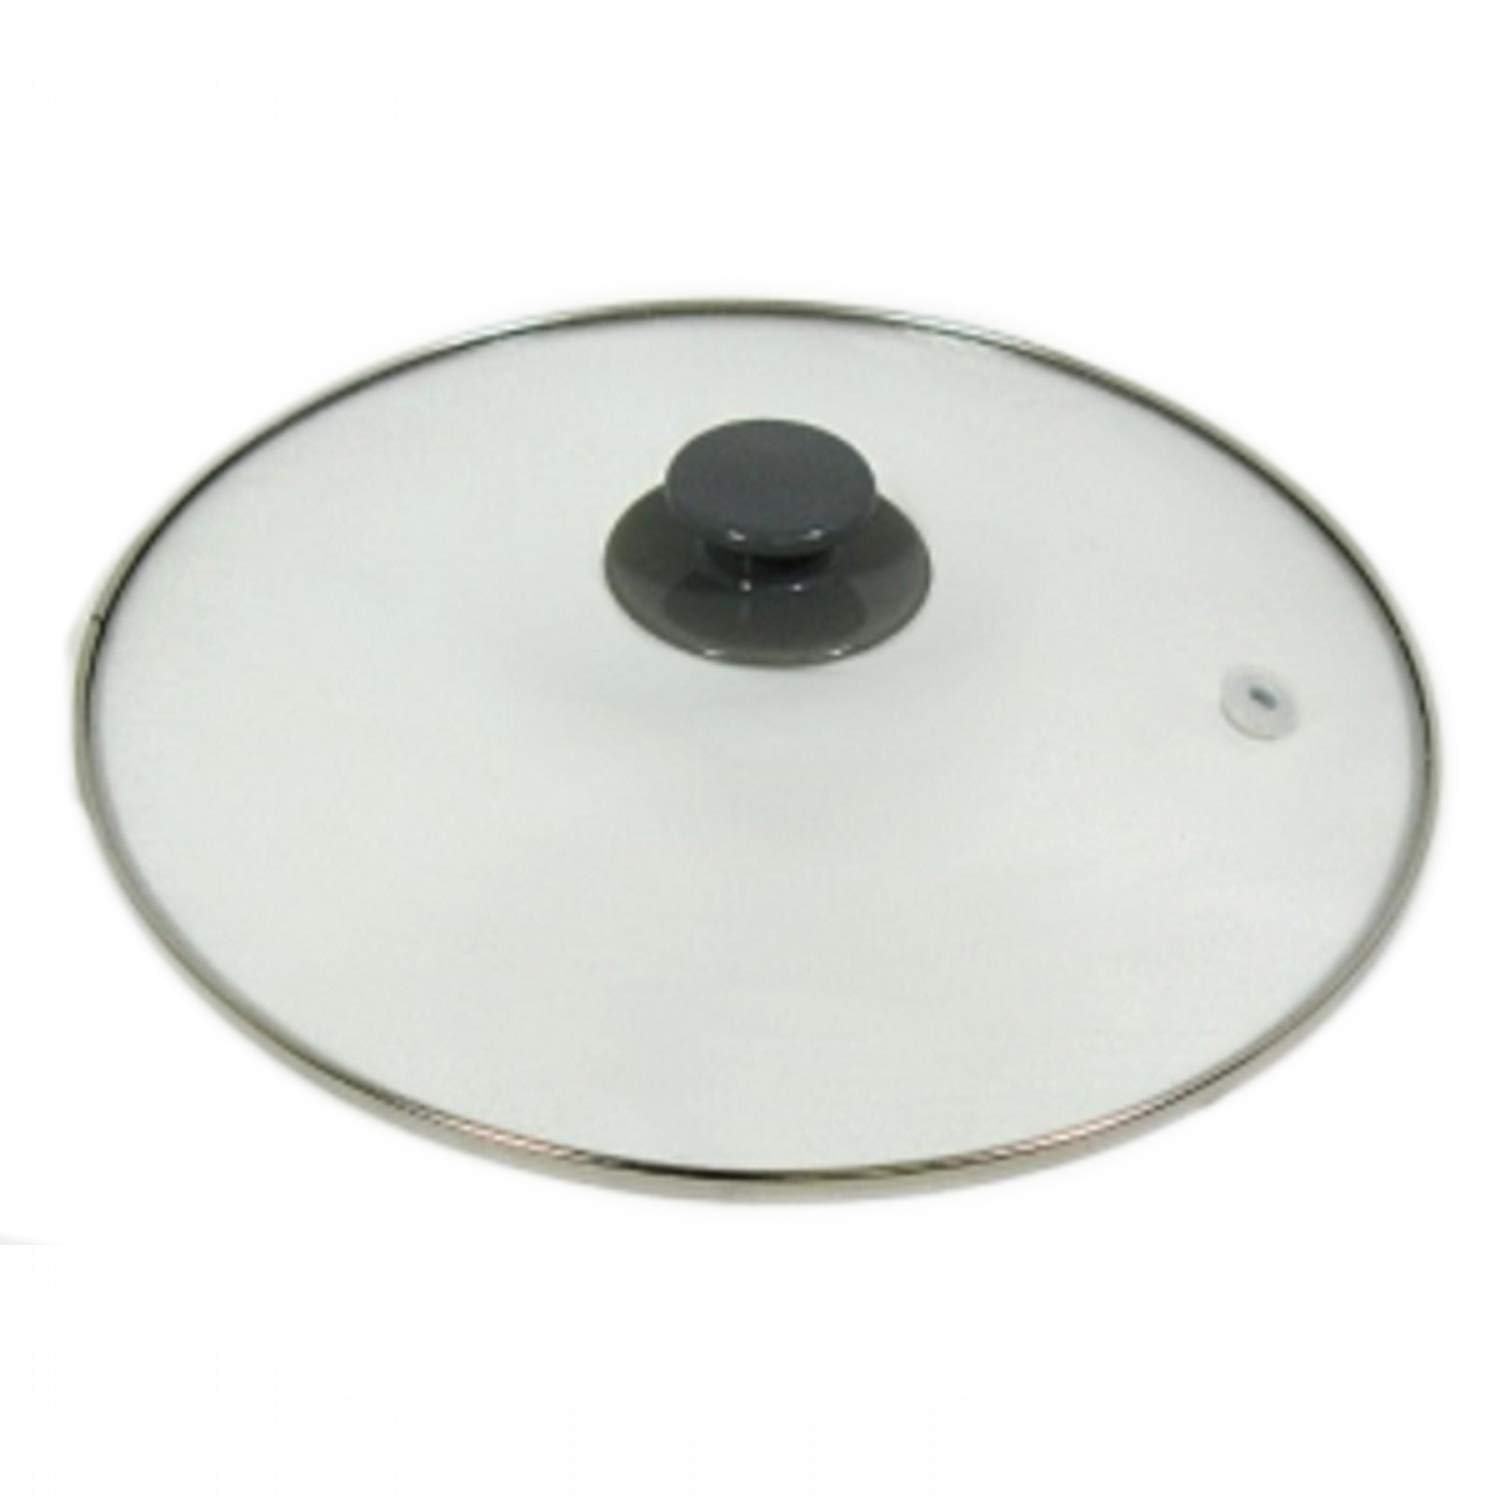 YourStoreFront Crock Pot & Slow Cooker 5, 6 Qt Replacement Round Glass Lid for Rival SCRC507-W by YourStoreFront